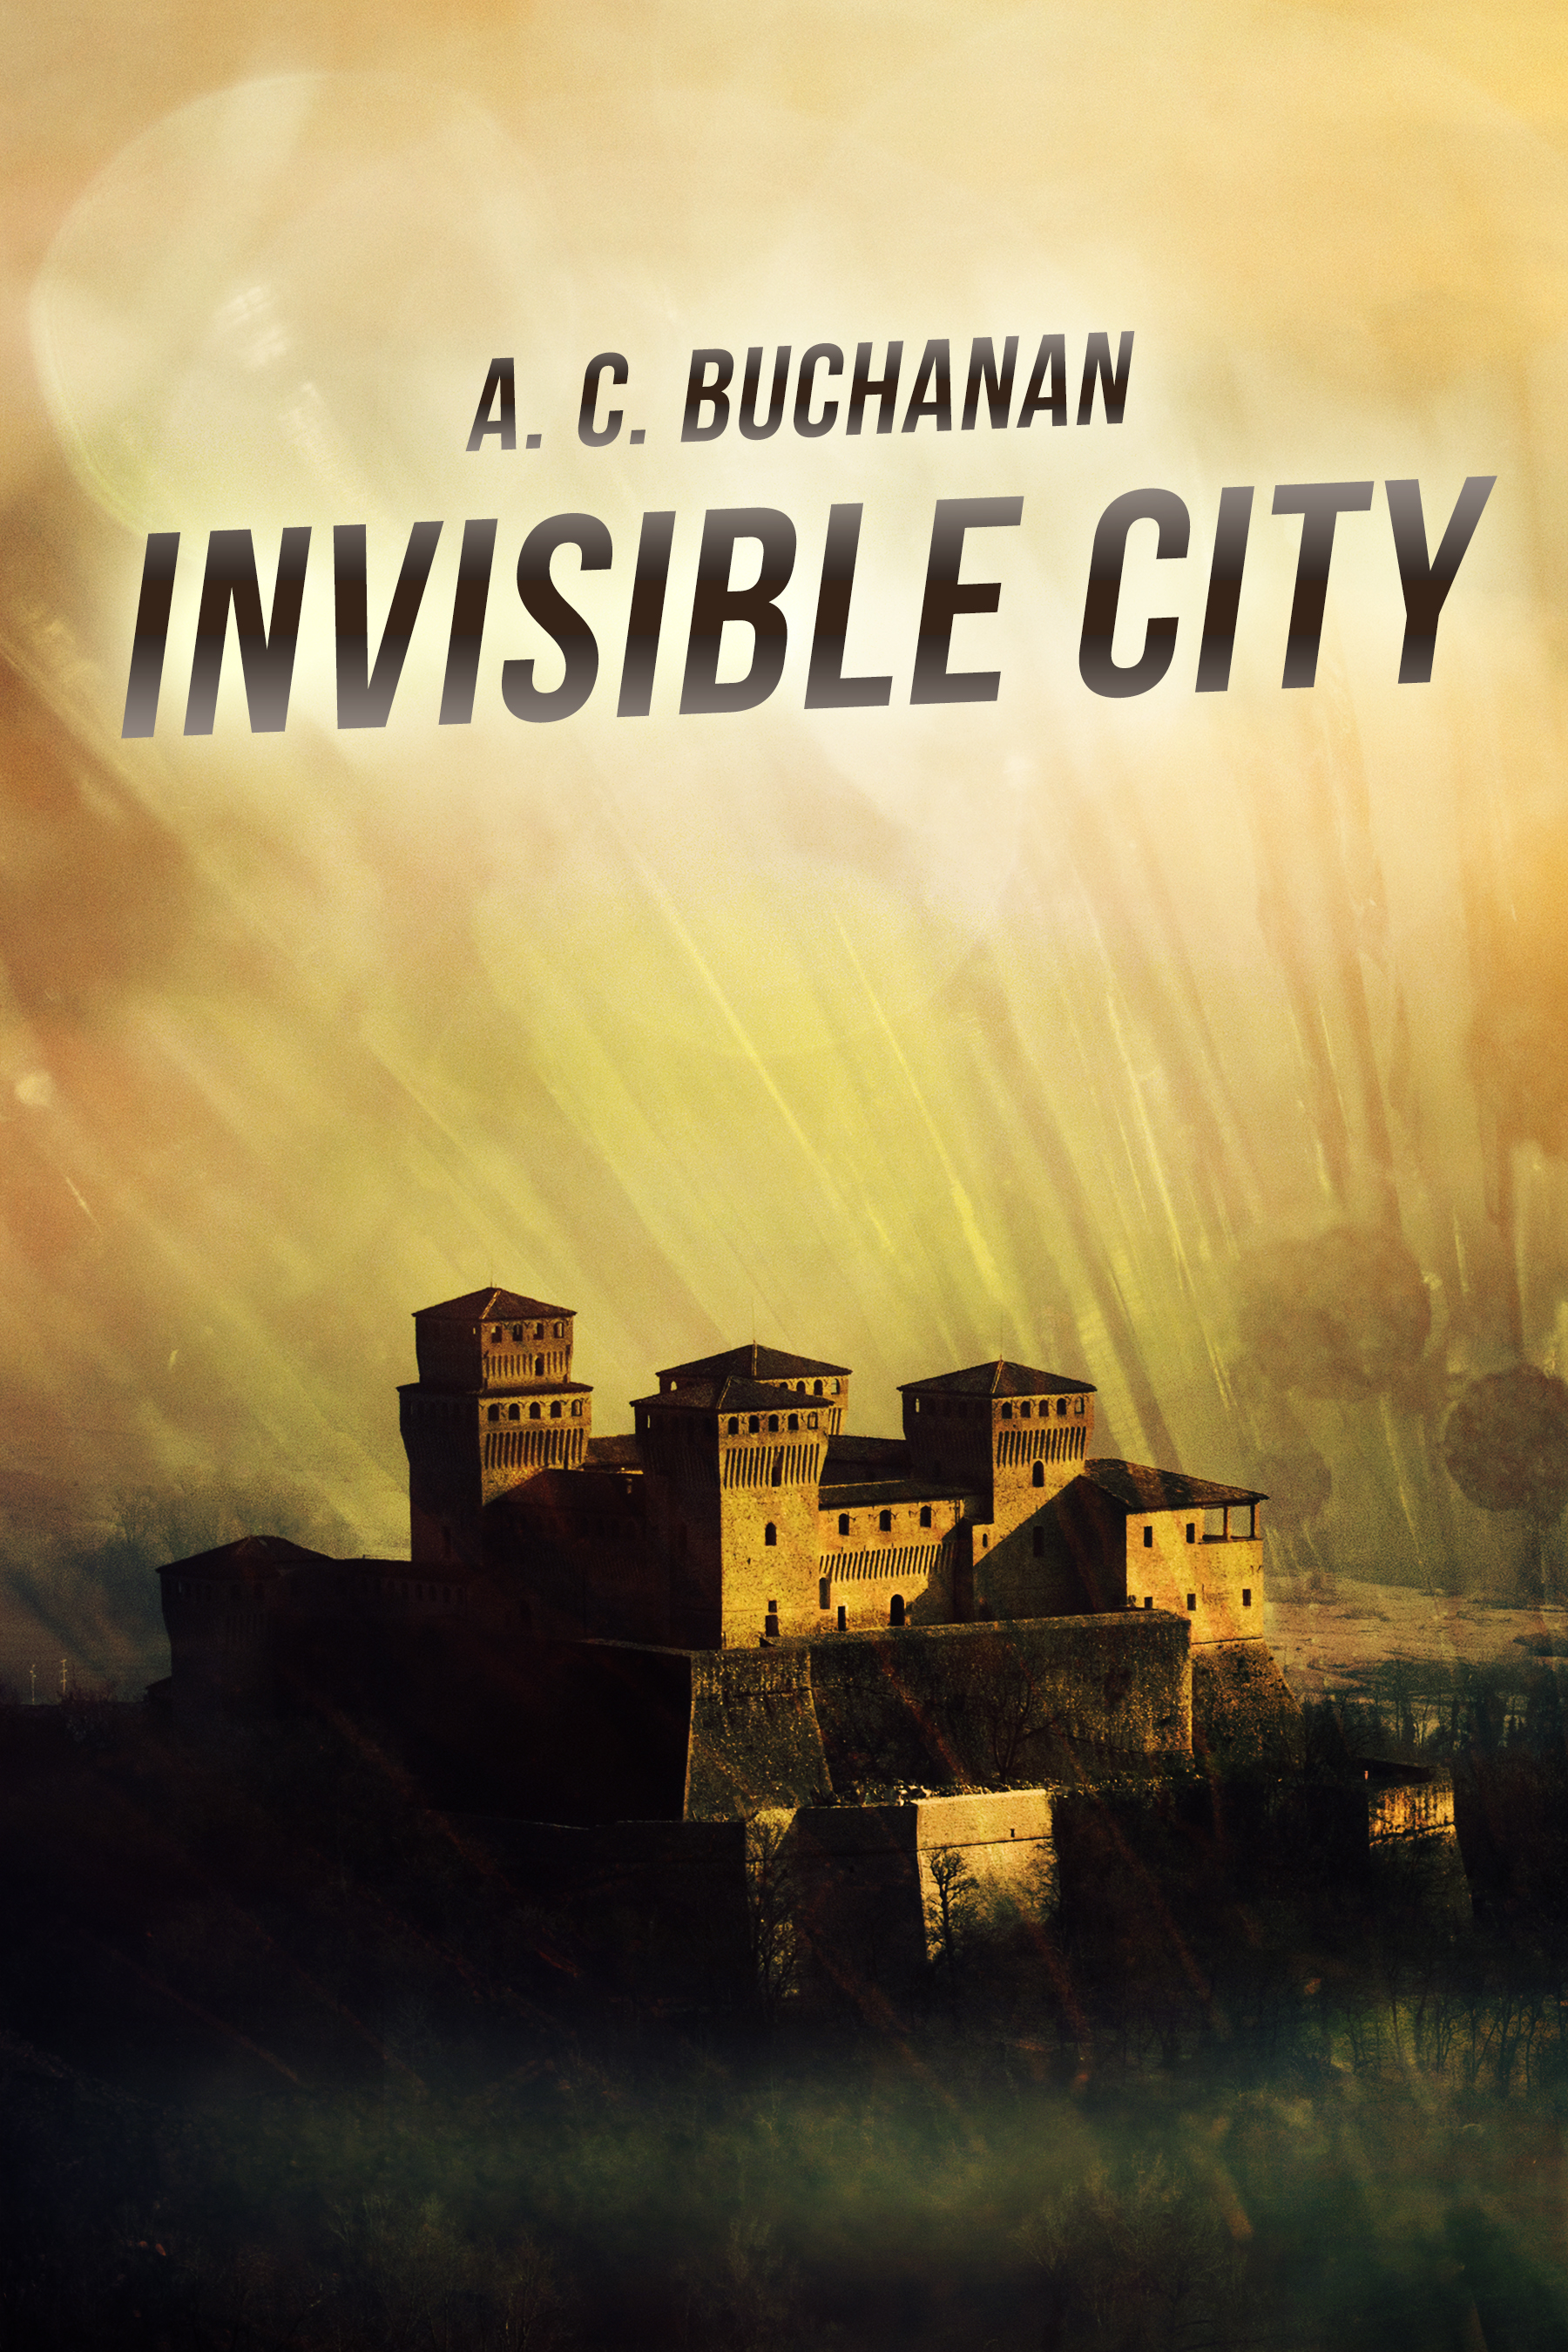 Invisible City by A.C. Buchanan